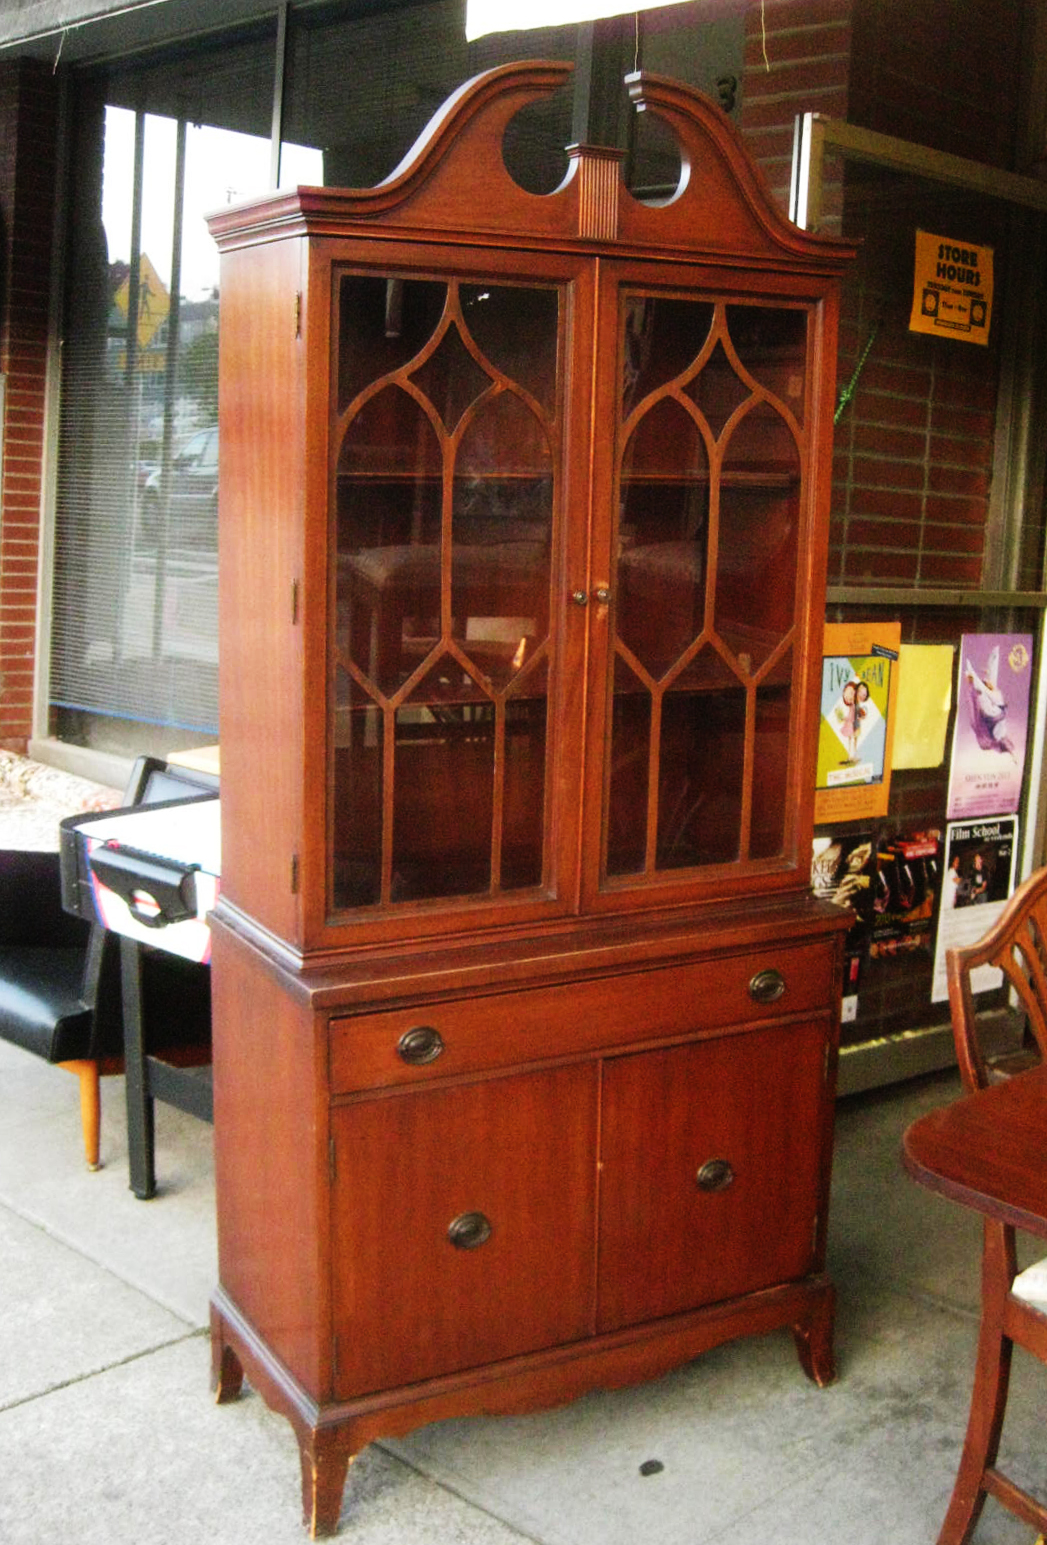 SOLD - Duncan Phyfe China Cabinet - $250